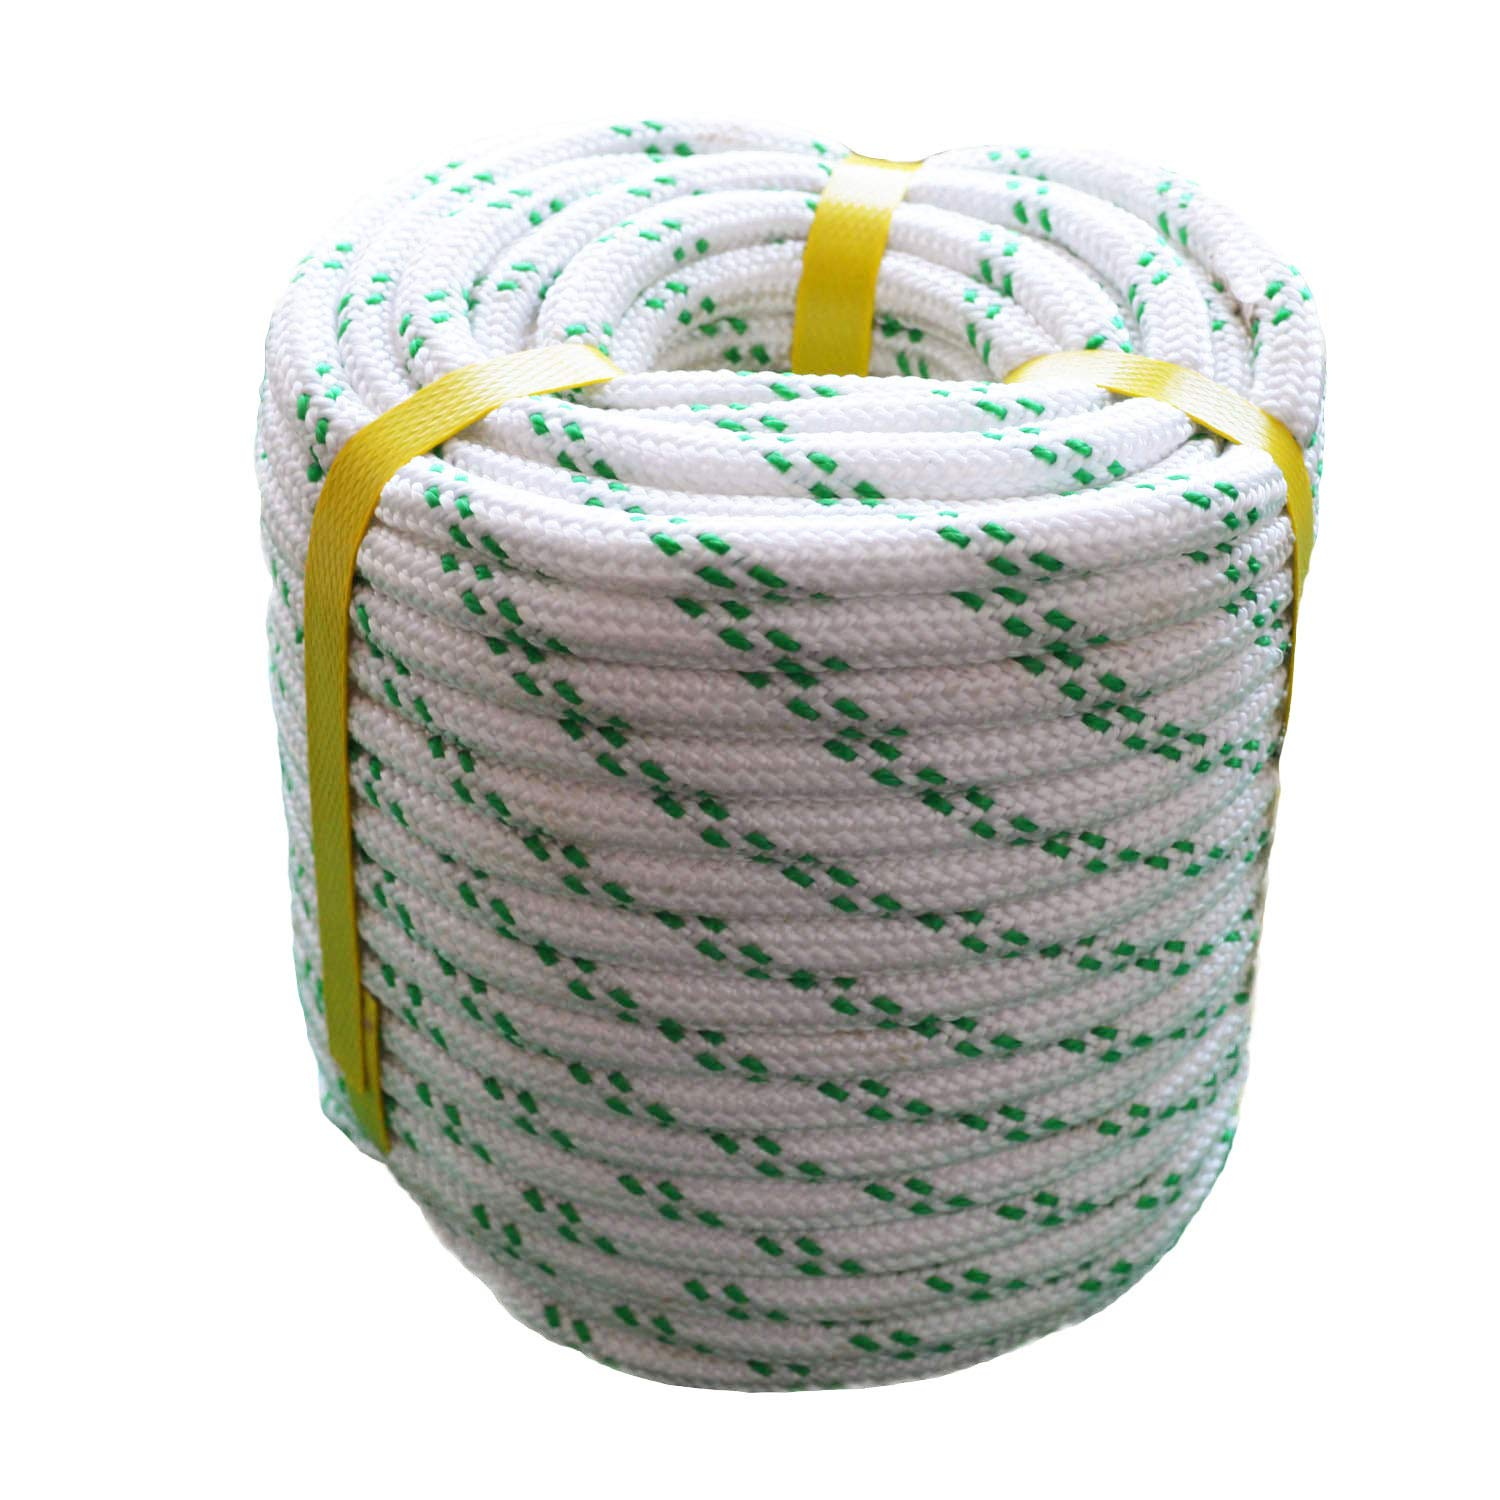 3//8 X 100 Strong Pulling Rope for Sailing Climbing Rope YuzeNet Braided Polyester Arborist Rigging Rope White with Green Tracers